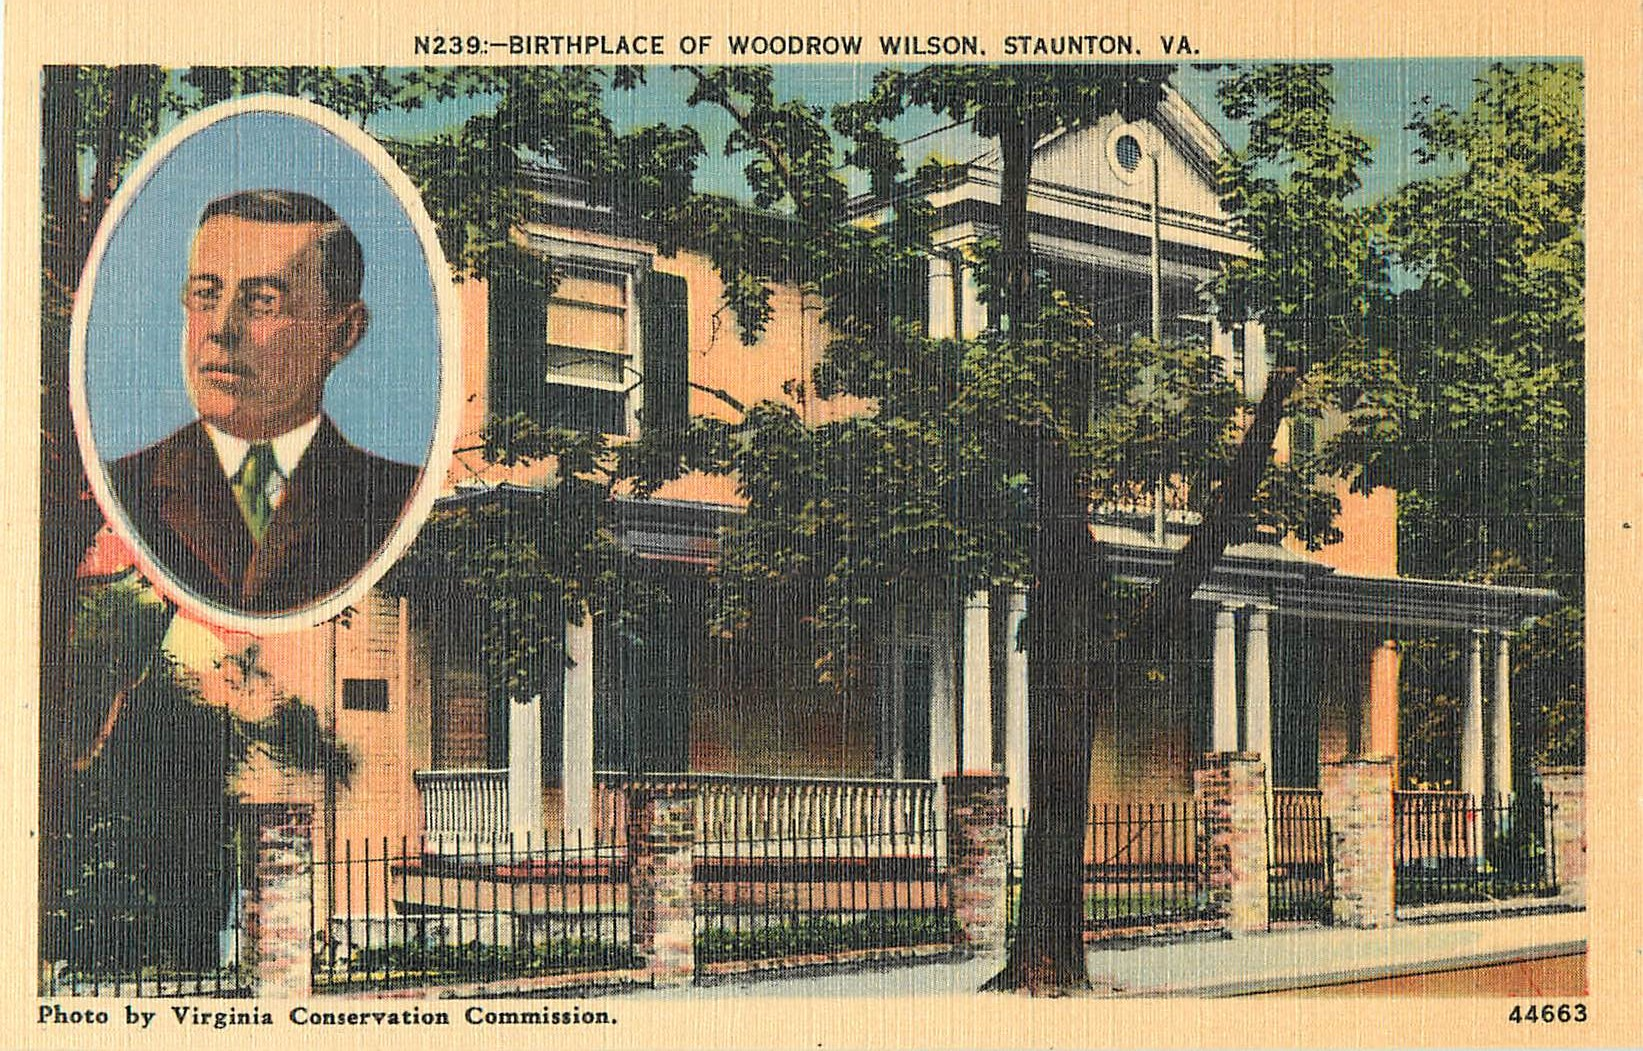 Birthplace of Woodrow Wilson